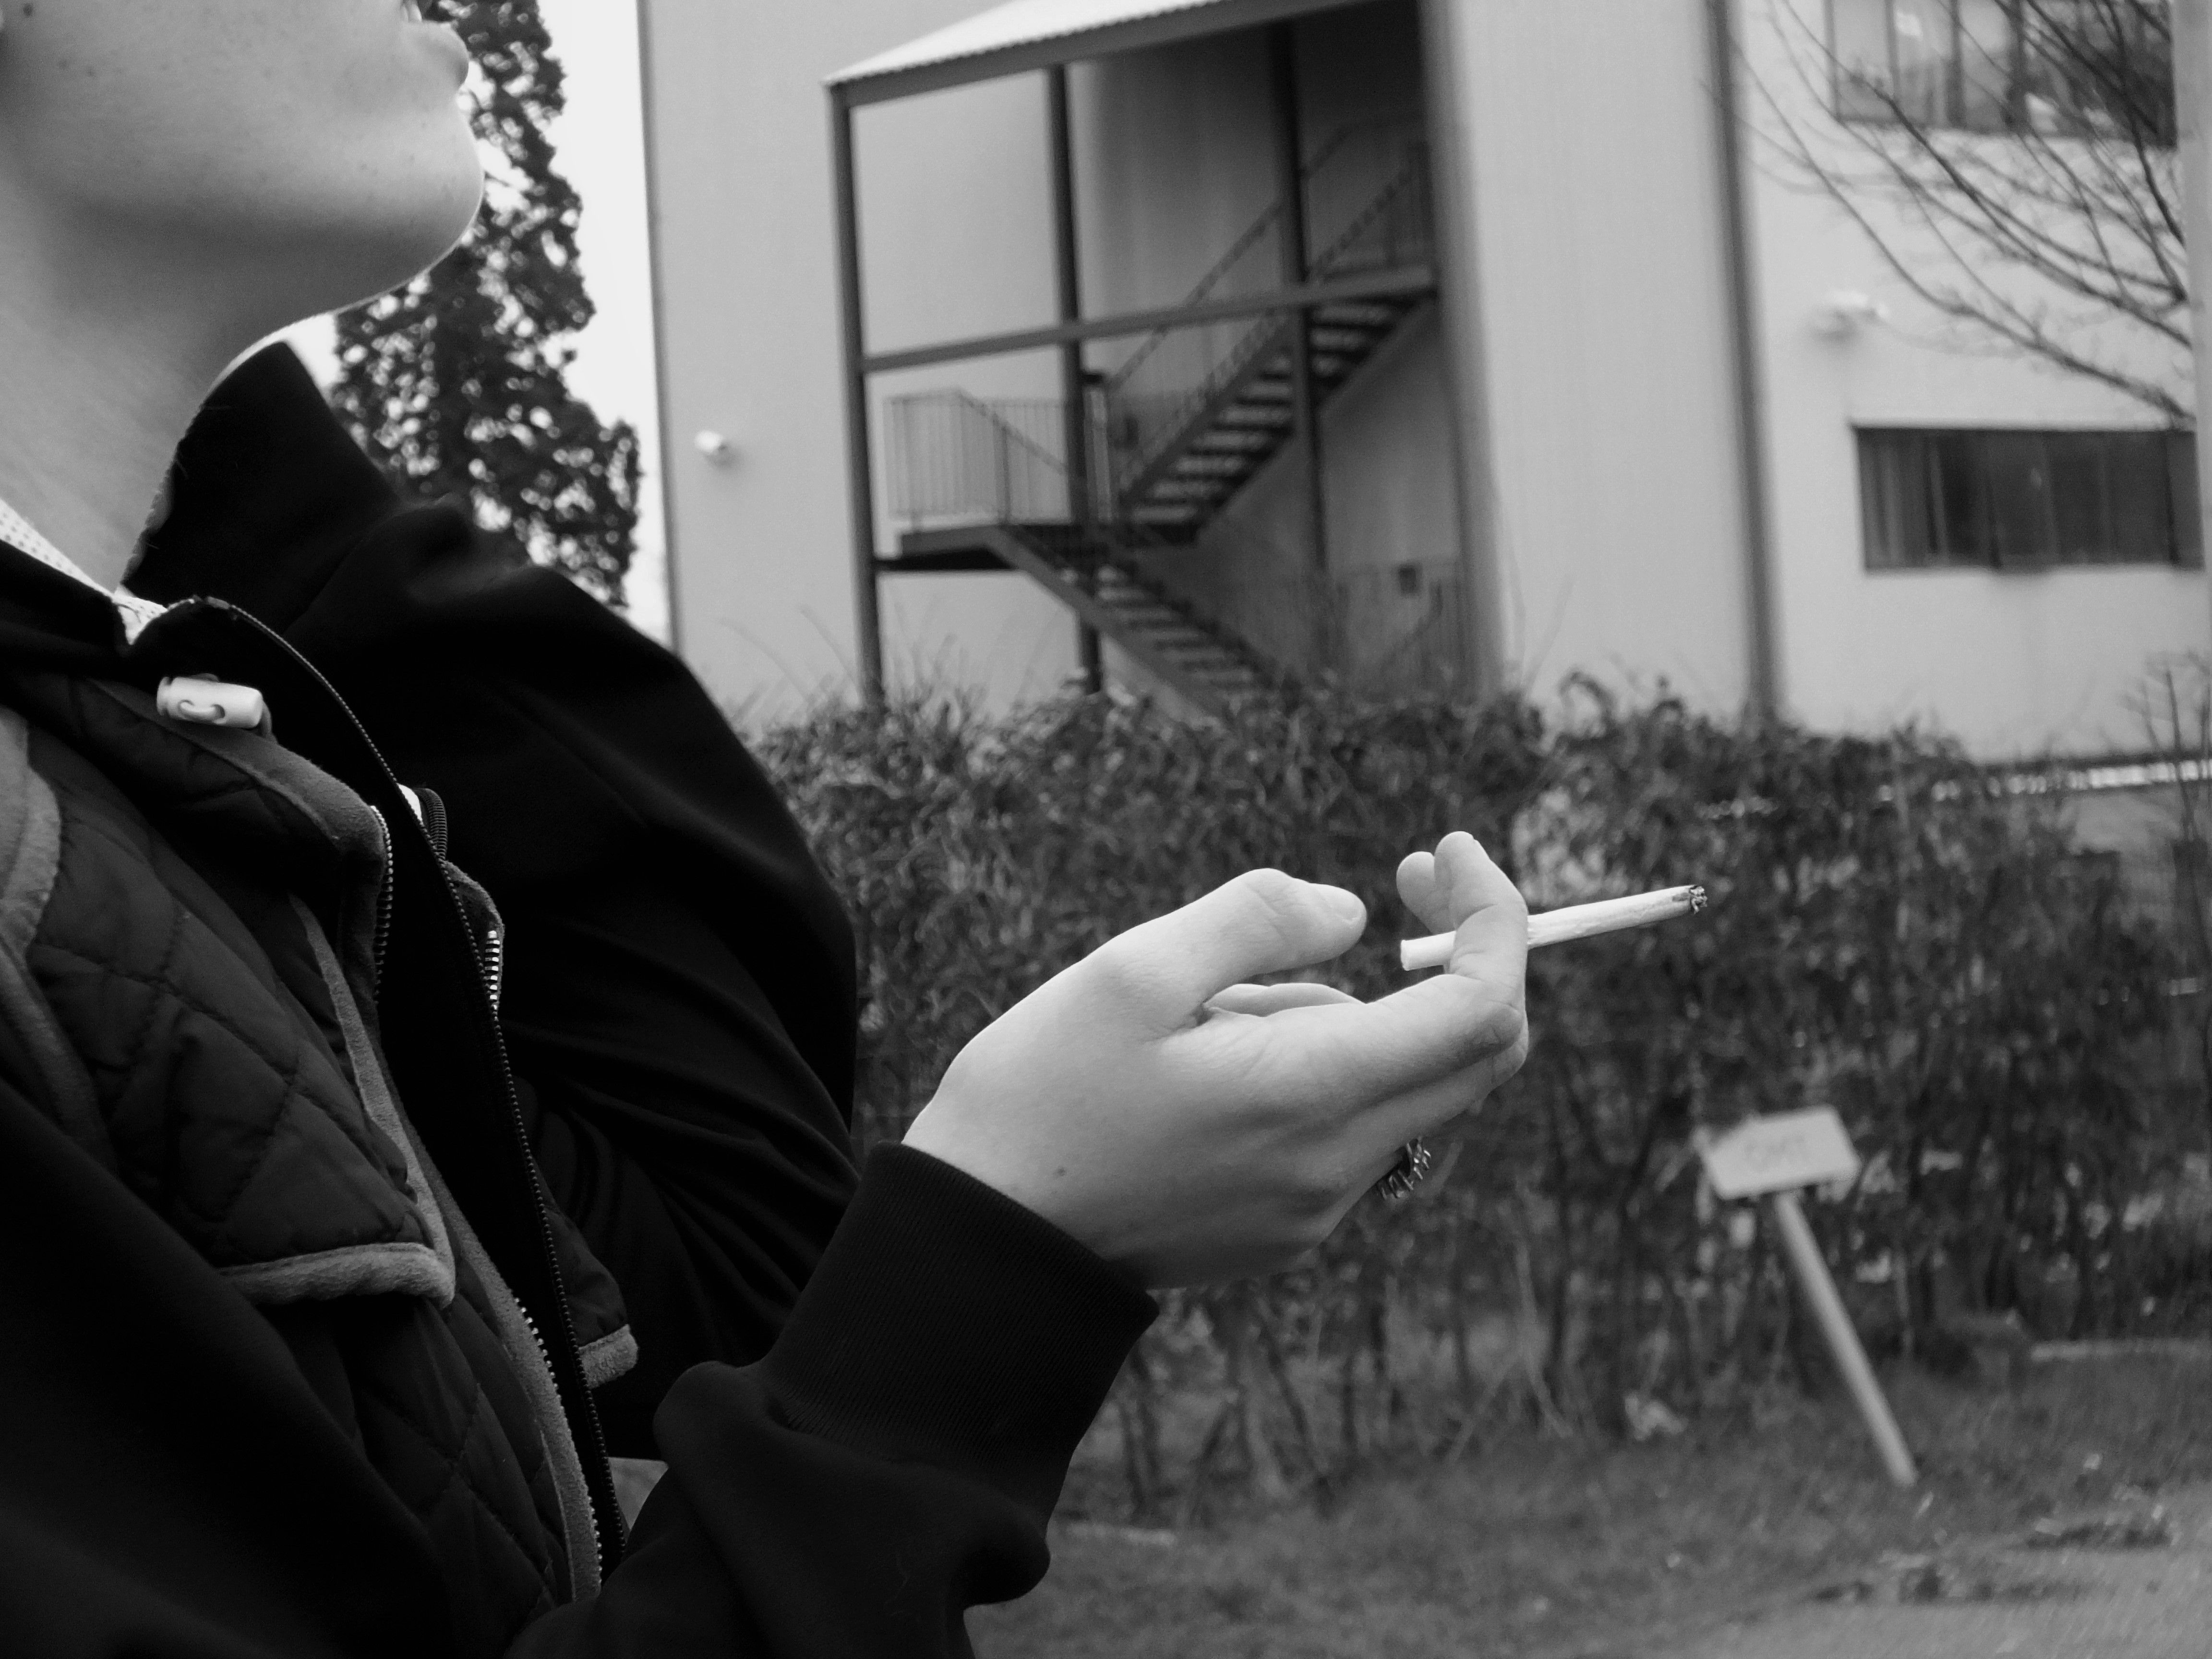 Unknown lass black and white theme smoking bad habits my